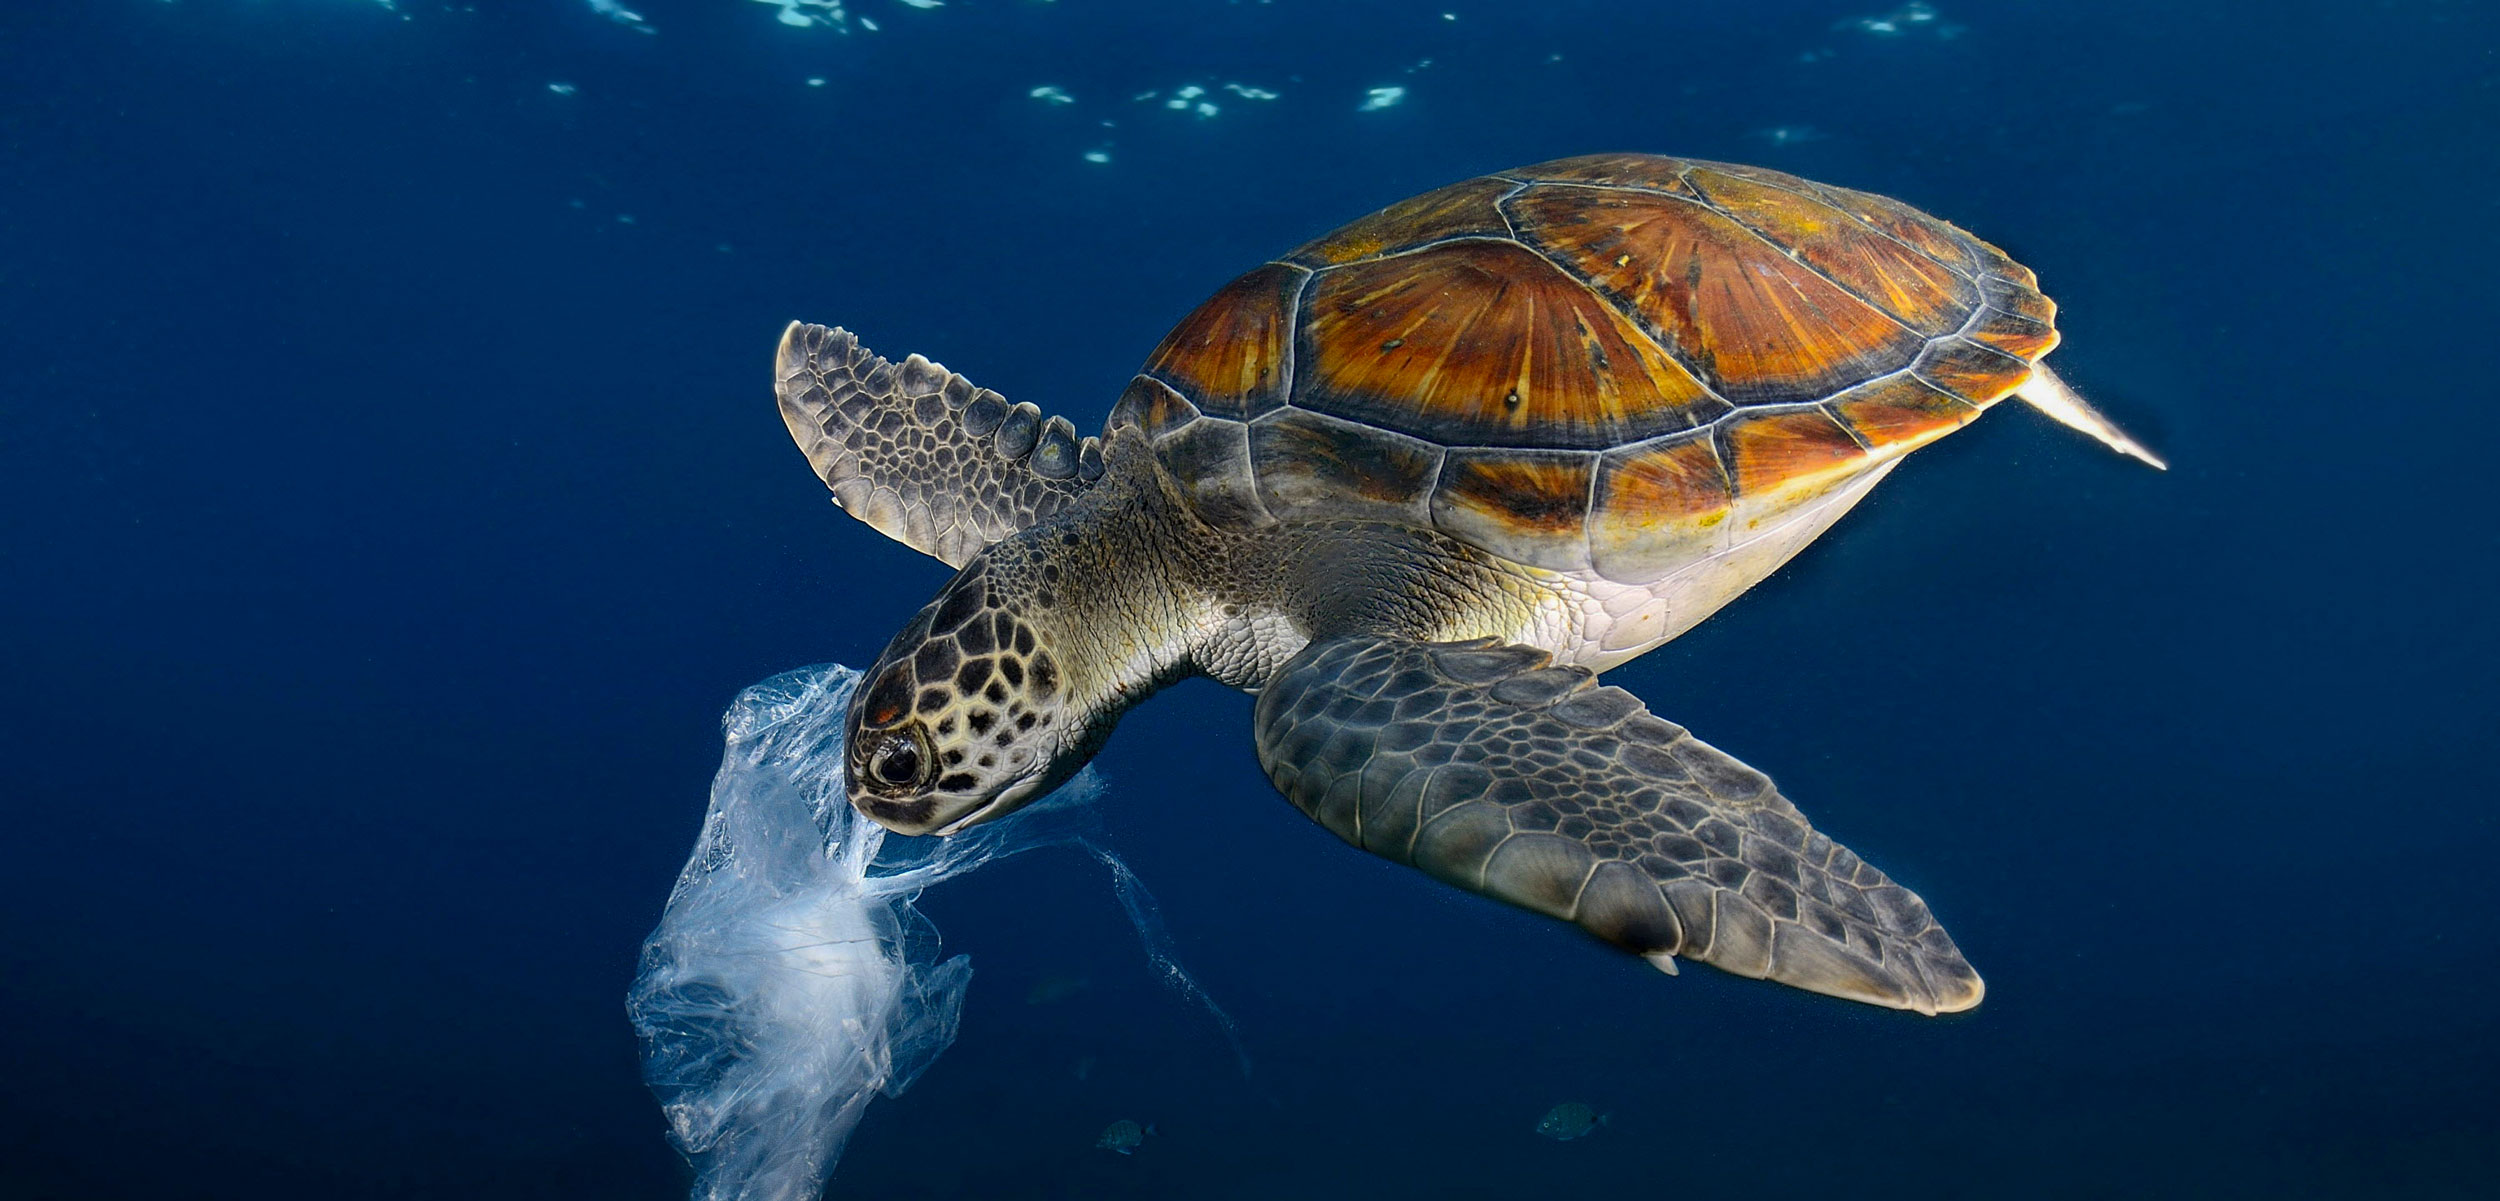 Green Sea Turtle (Chelonia mydas) eating plastic bag